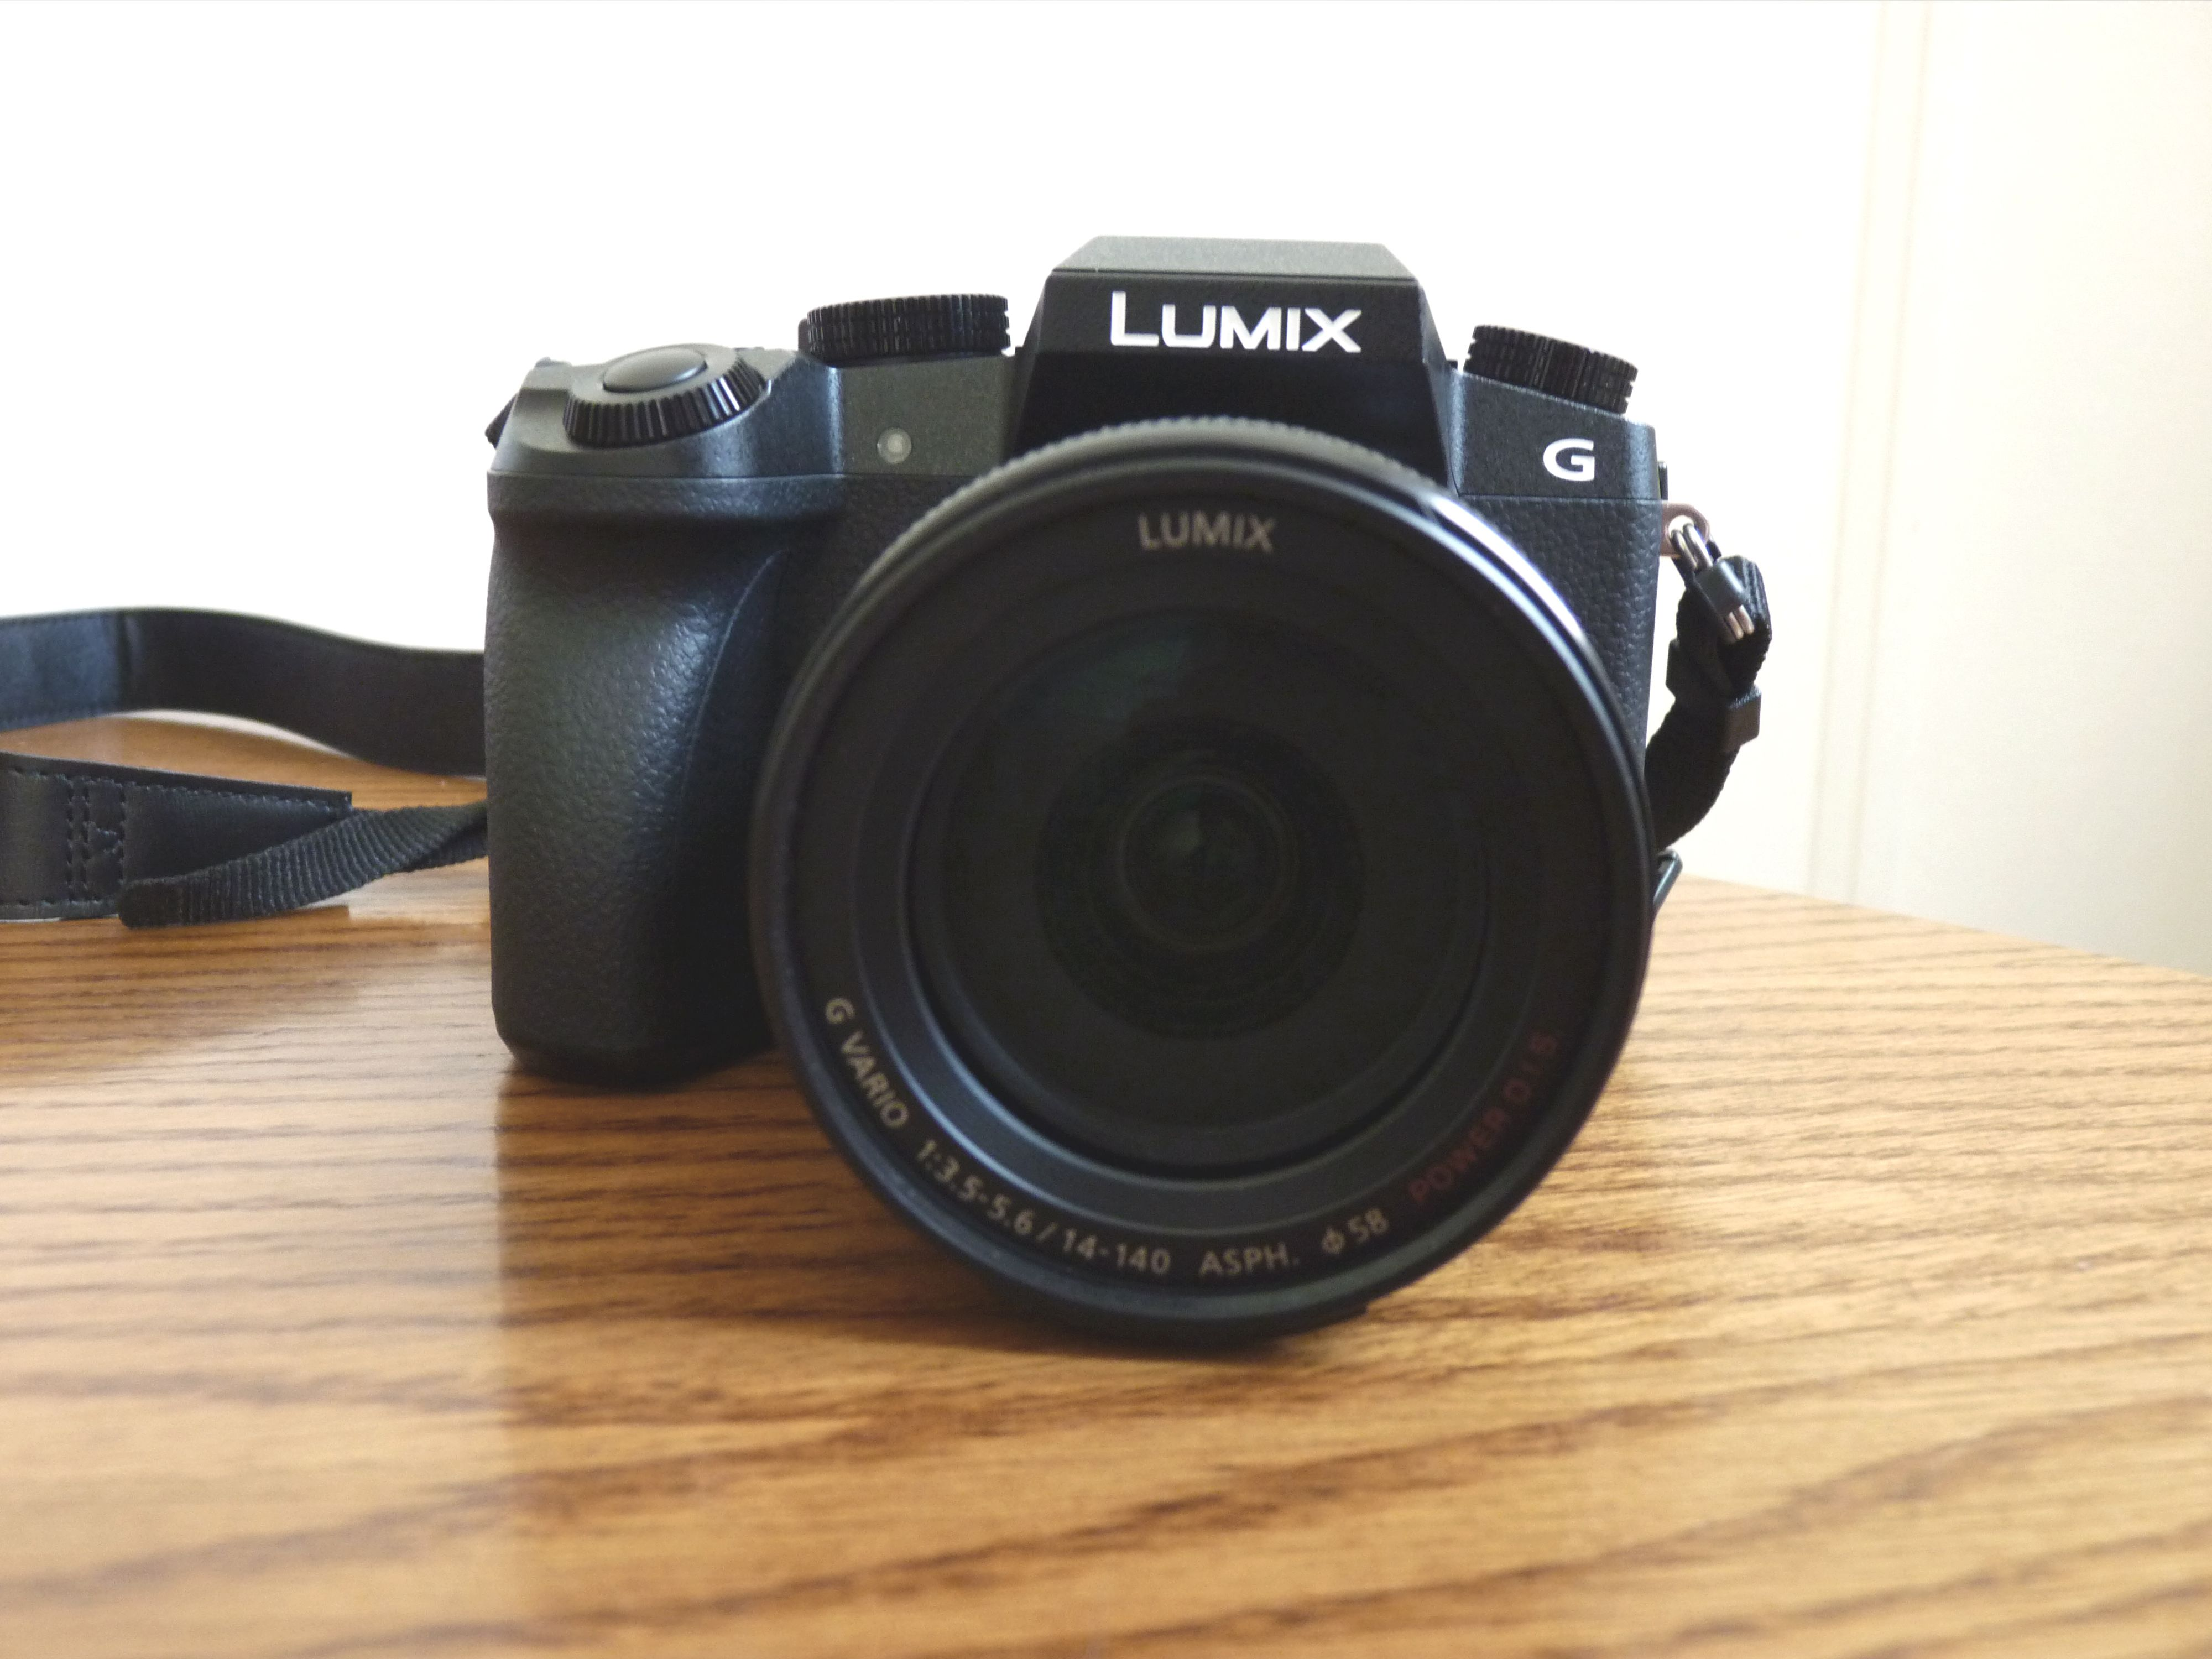 Panasonic Lumix DMC-G7 vu de face